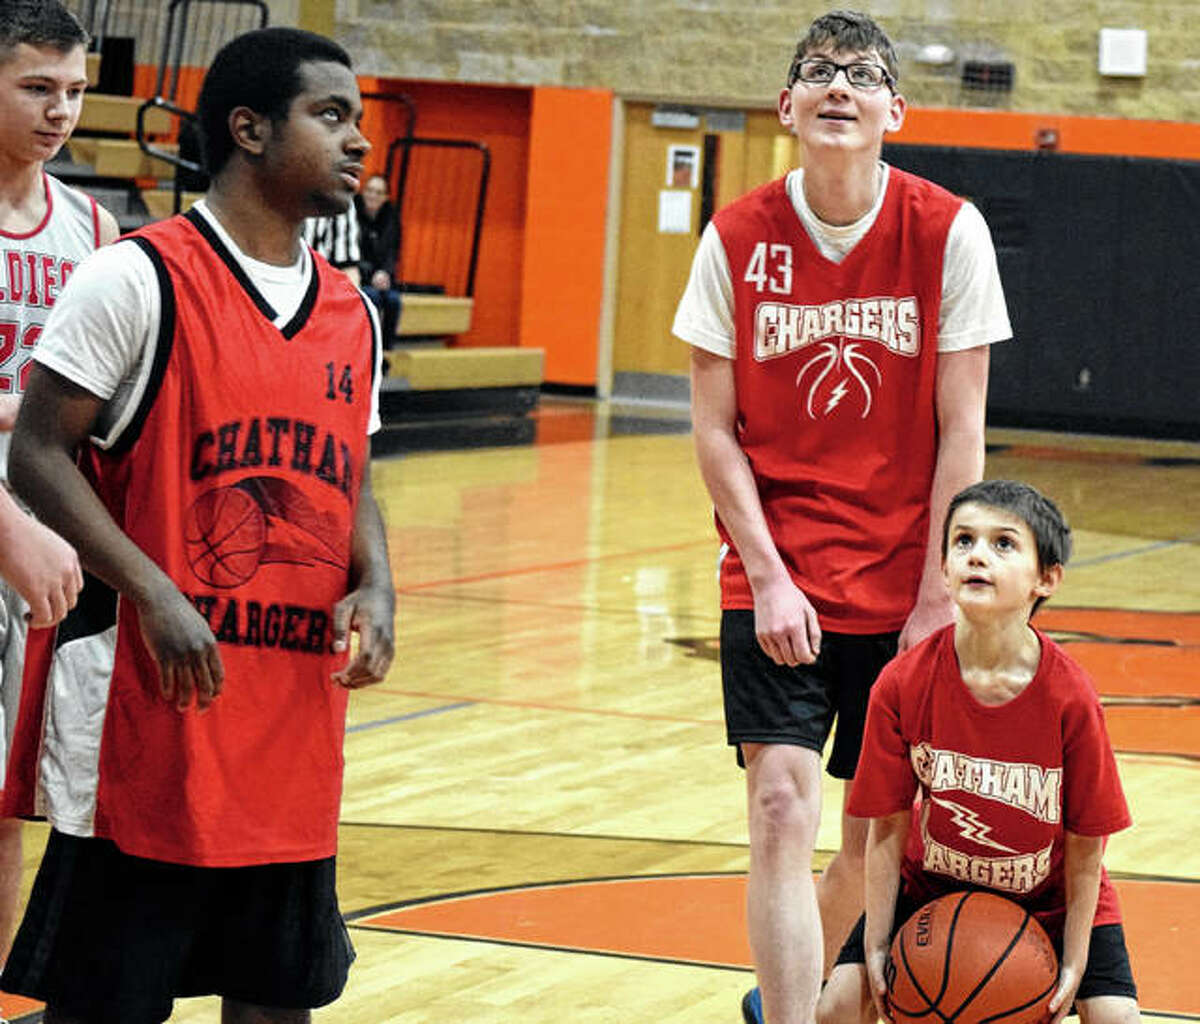 Members of the Chatham Chargers play against Beardstown Christian Academy Saturday during the Beardstown Area Special Athletes 88 Hoops Classic at Beardstown High School. The organization provides opportunities for students to participate in Special Olympics activities.